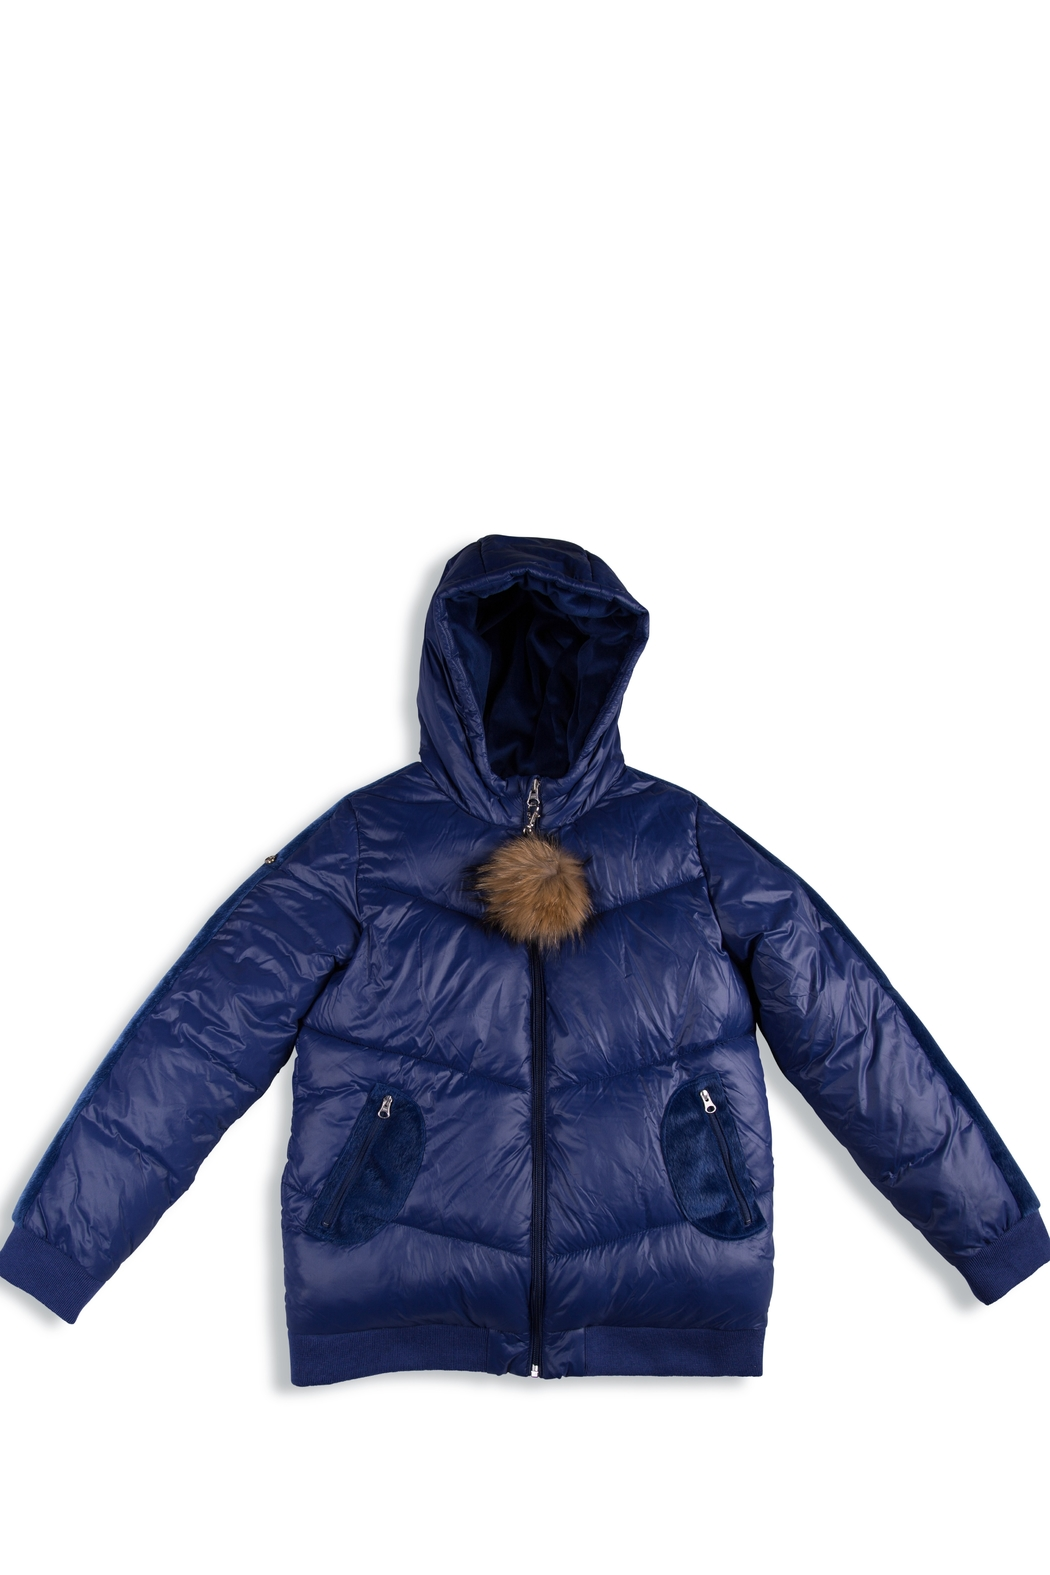 COZY COOP  Winter Jackets for Kids with Hoods (Padded) Light Puffer Jacket for Children all Sizes, Unisex - Main Image